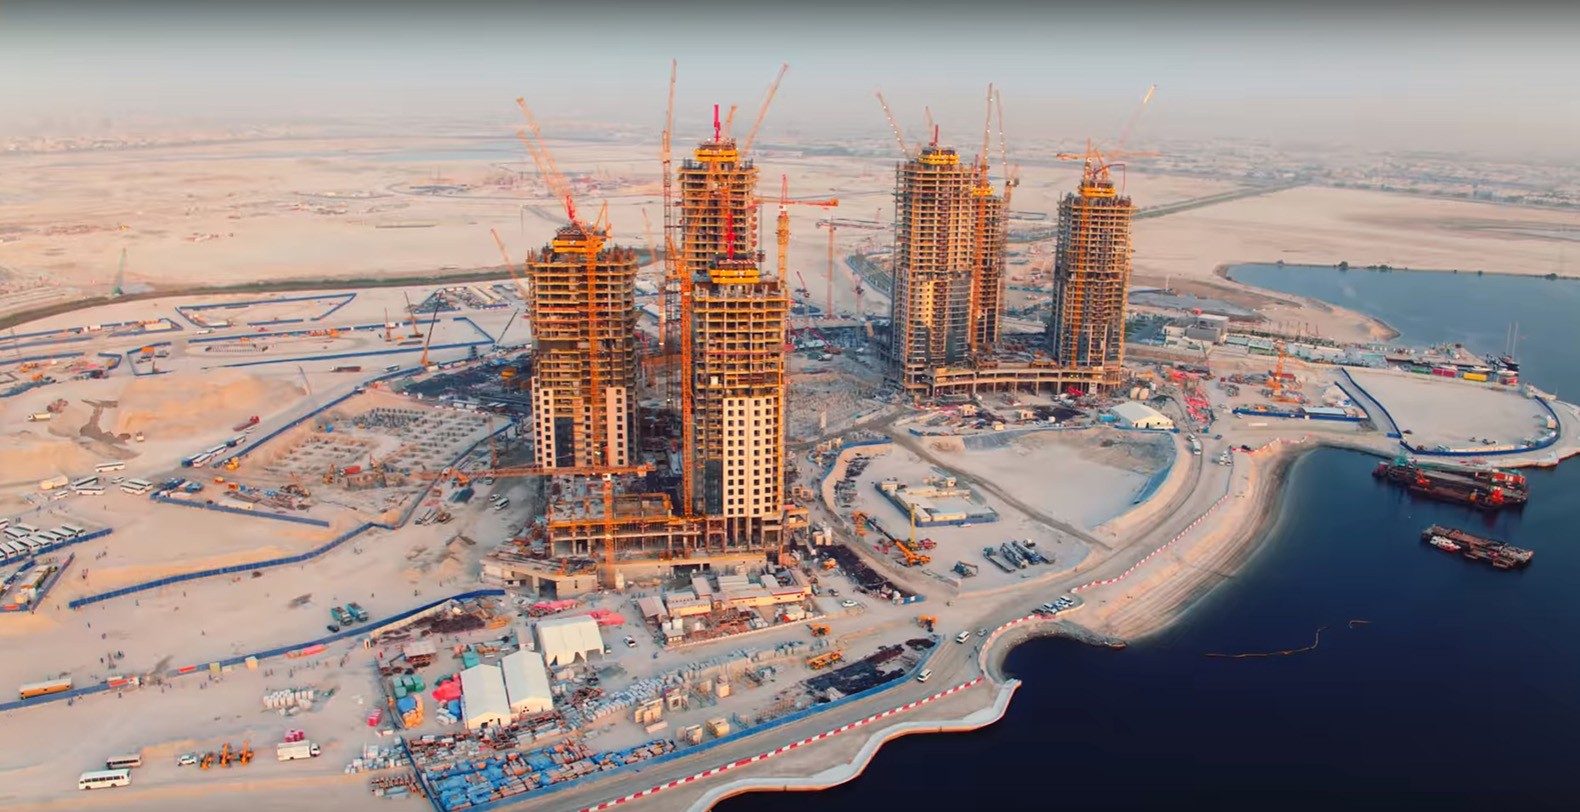 New Dubai Creek Tower images show progress on the next worlds tallest building